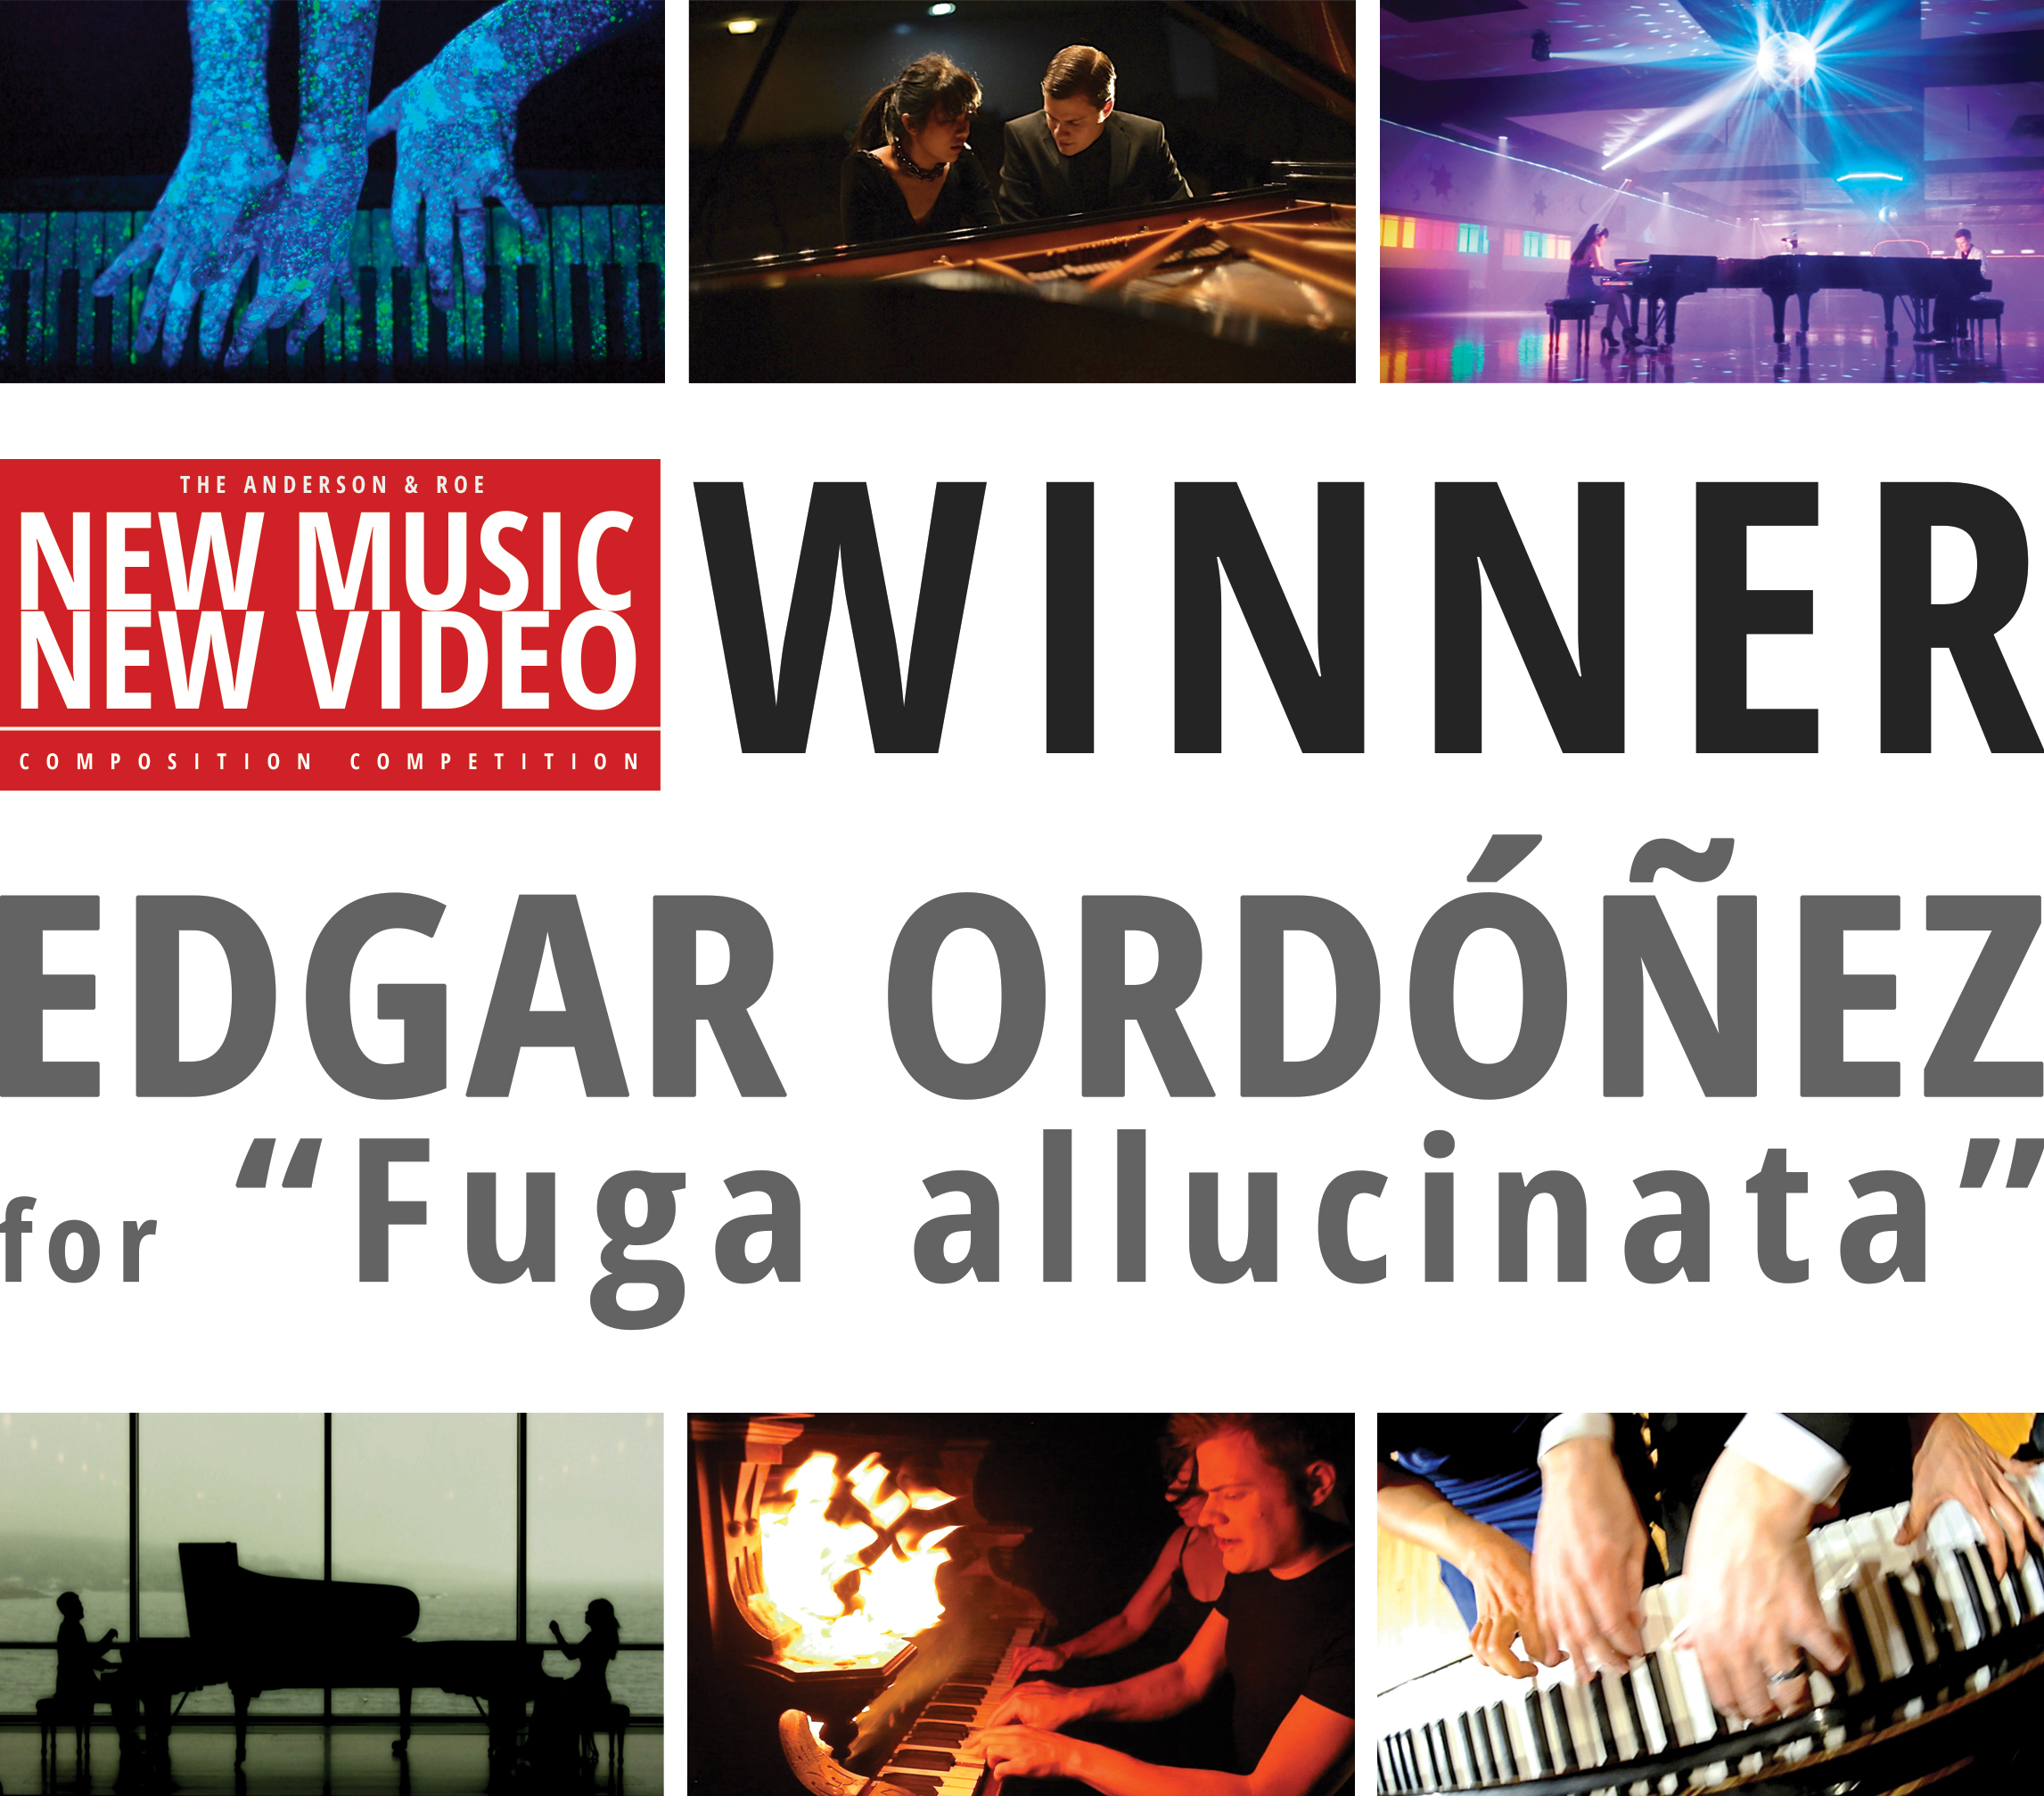 new music new video winner announcement c.jpg